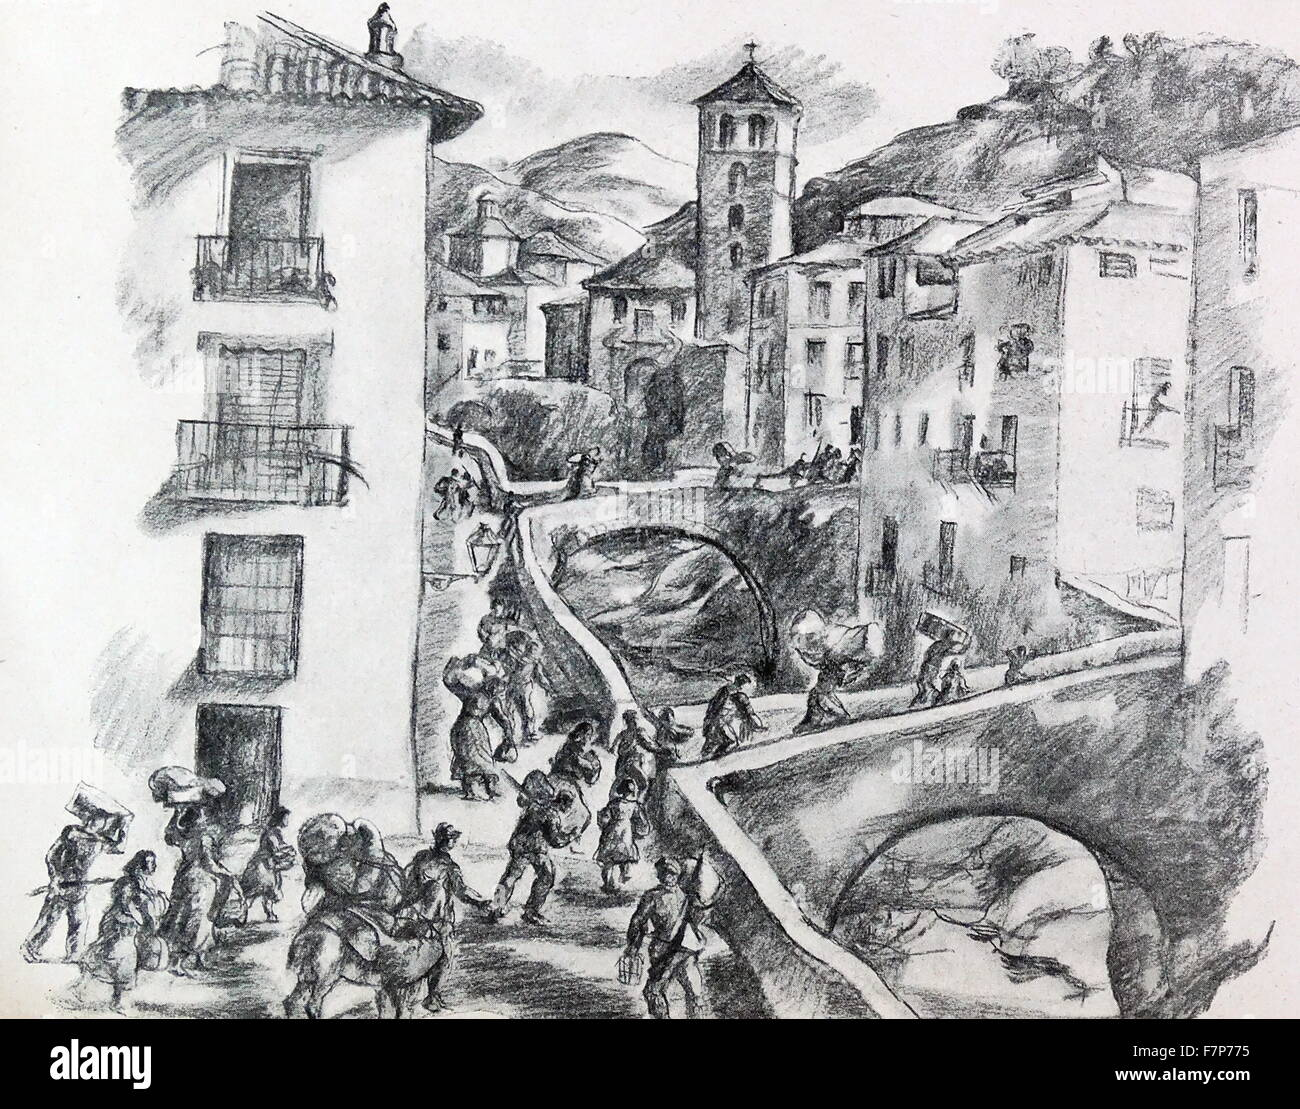 refugees flee from advancing armies during the Spanish Civil War. By Carlos Saenz de Tejada (1897 - 1958 ) Spanish - Stock Image